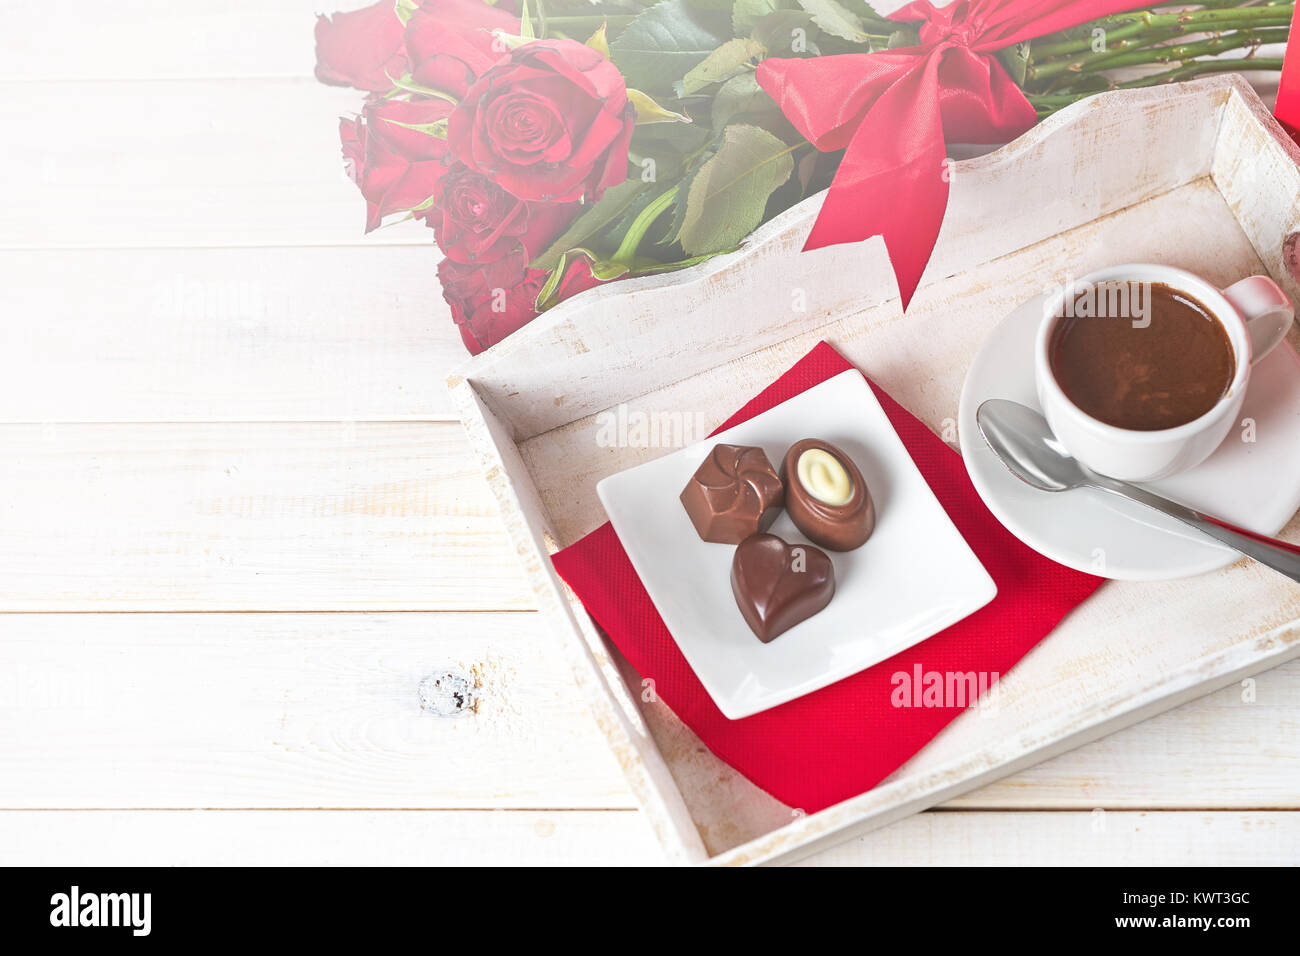 Top view of chocolate bonbons and coffee - Stock Image